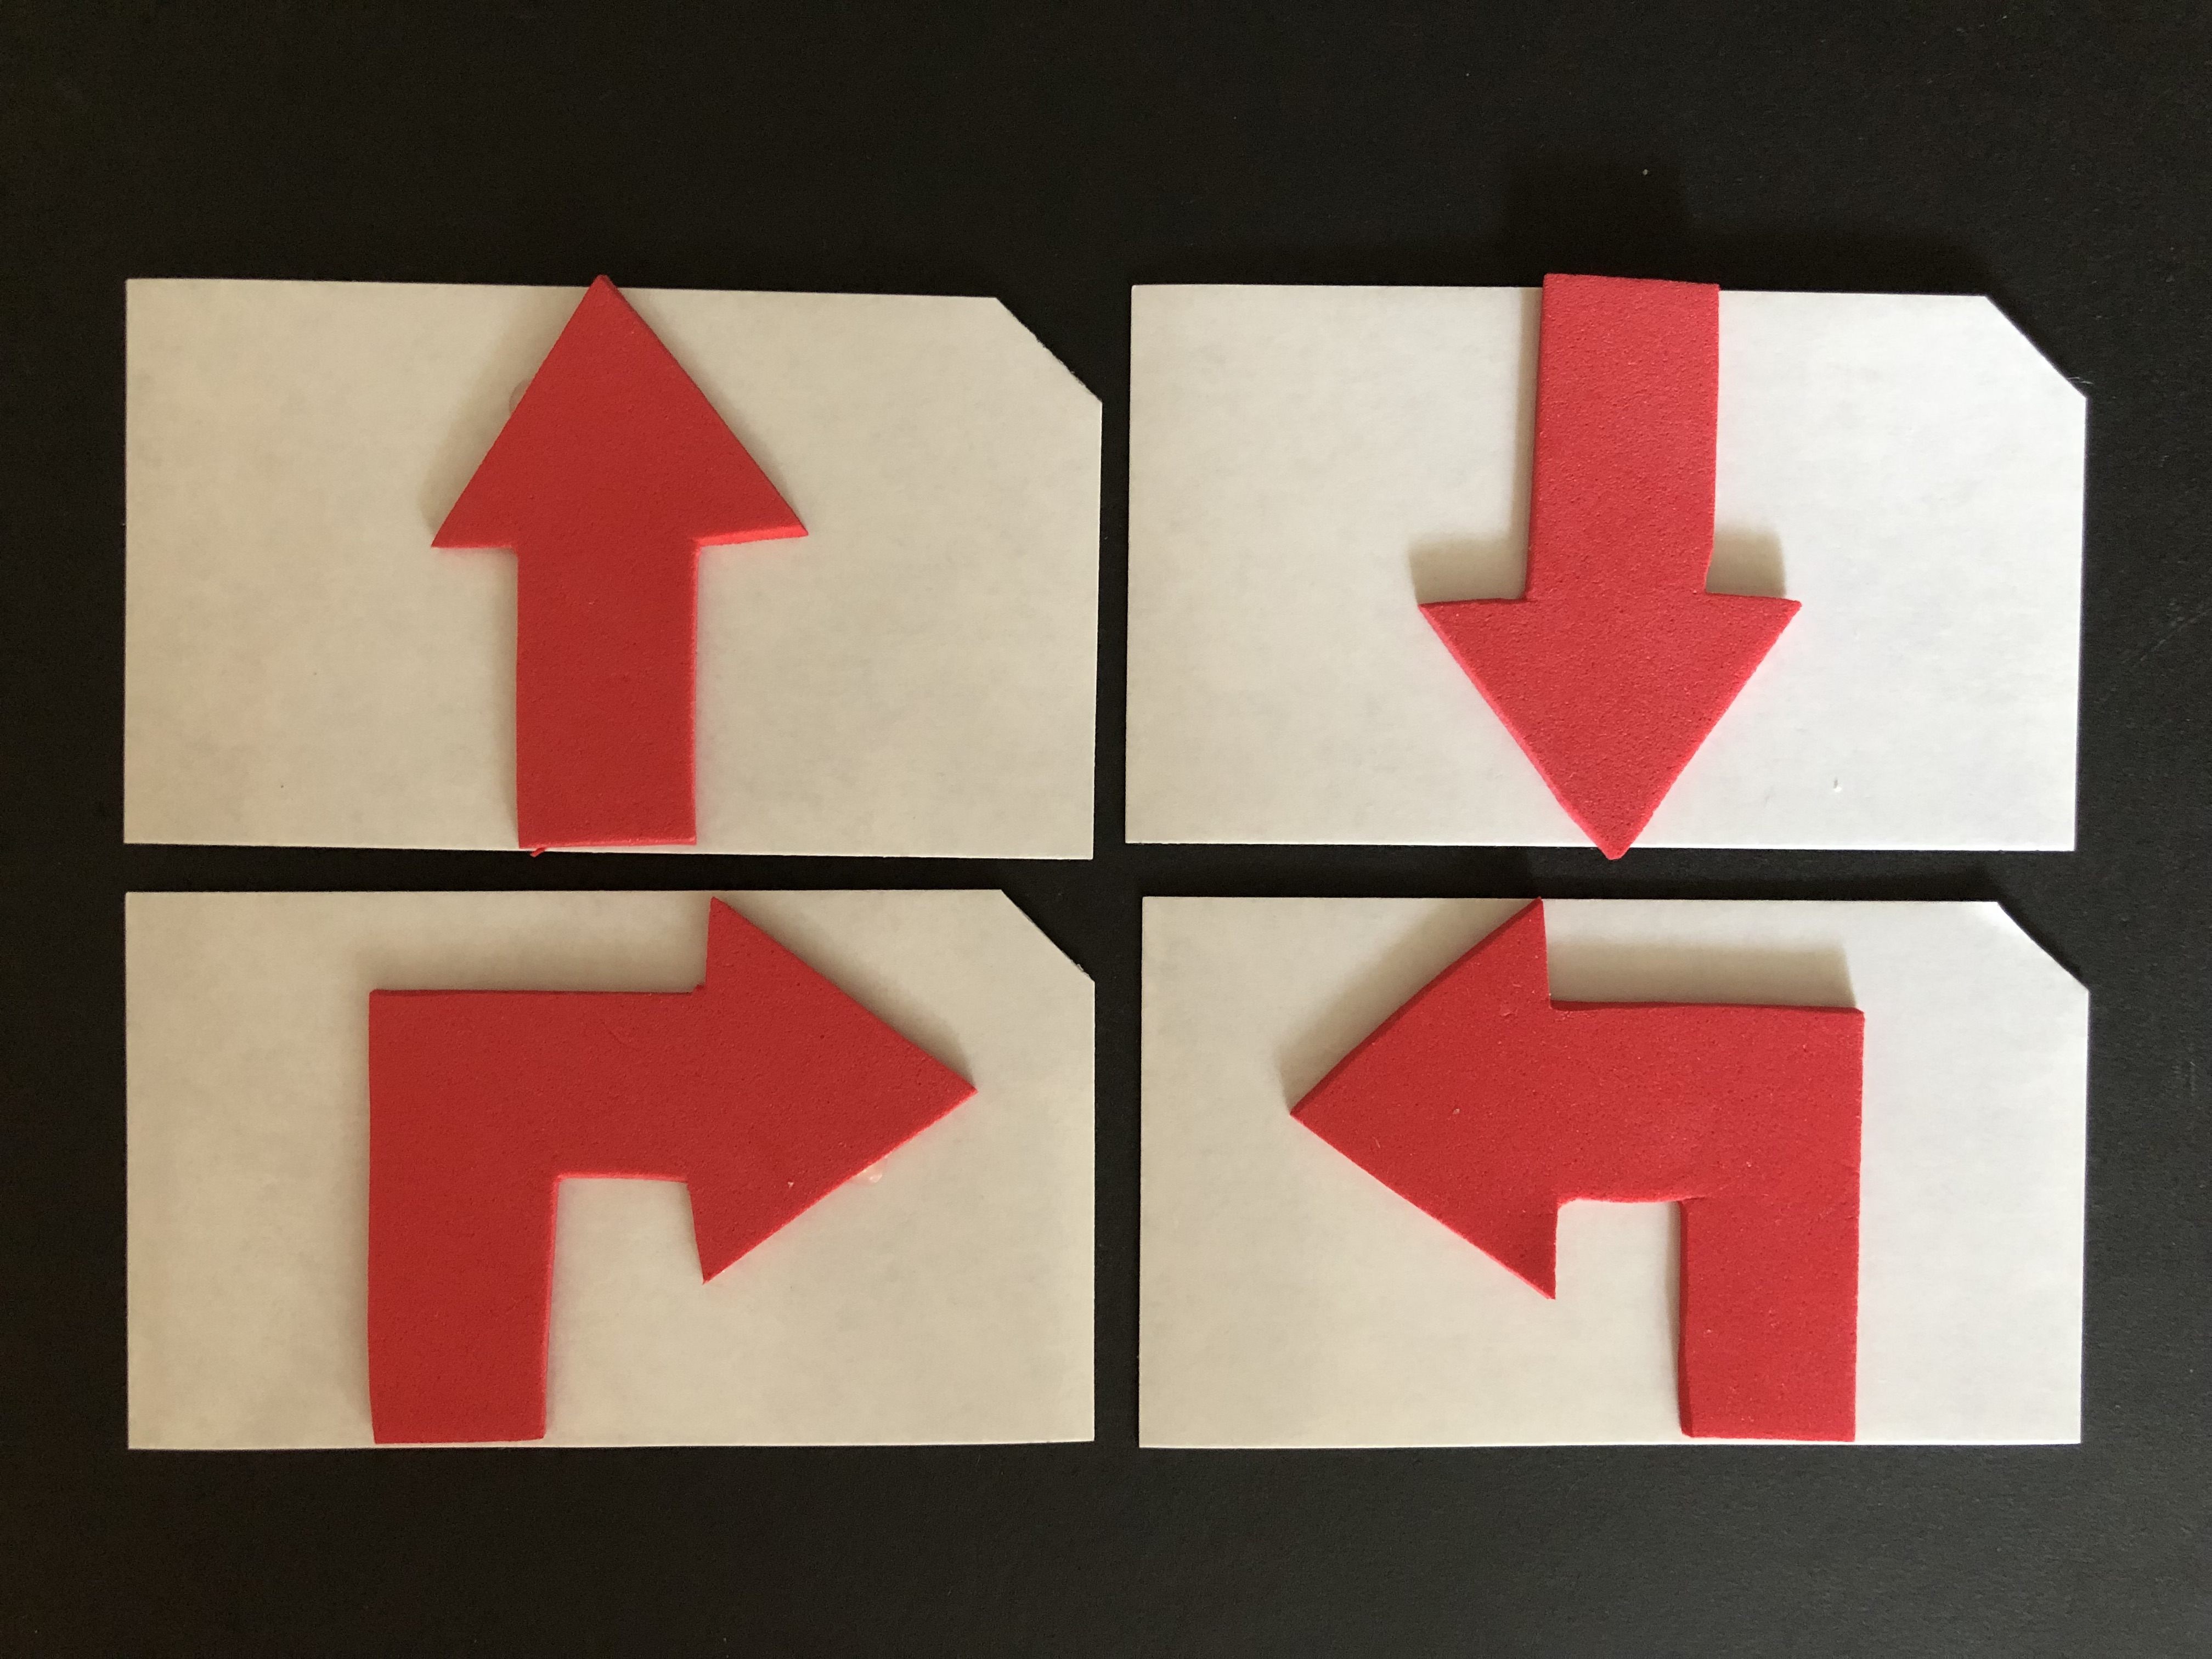 Four magnetic business cards with clipped top right corners. Each card has one red foam arrow: up, down, right or left.